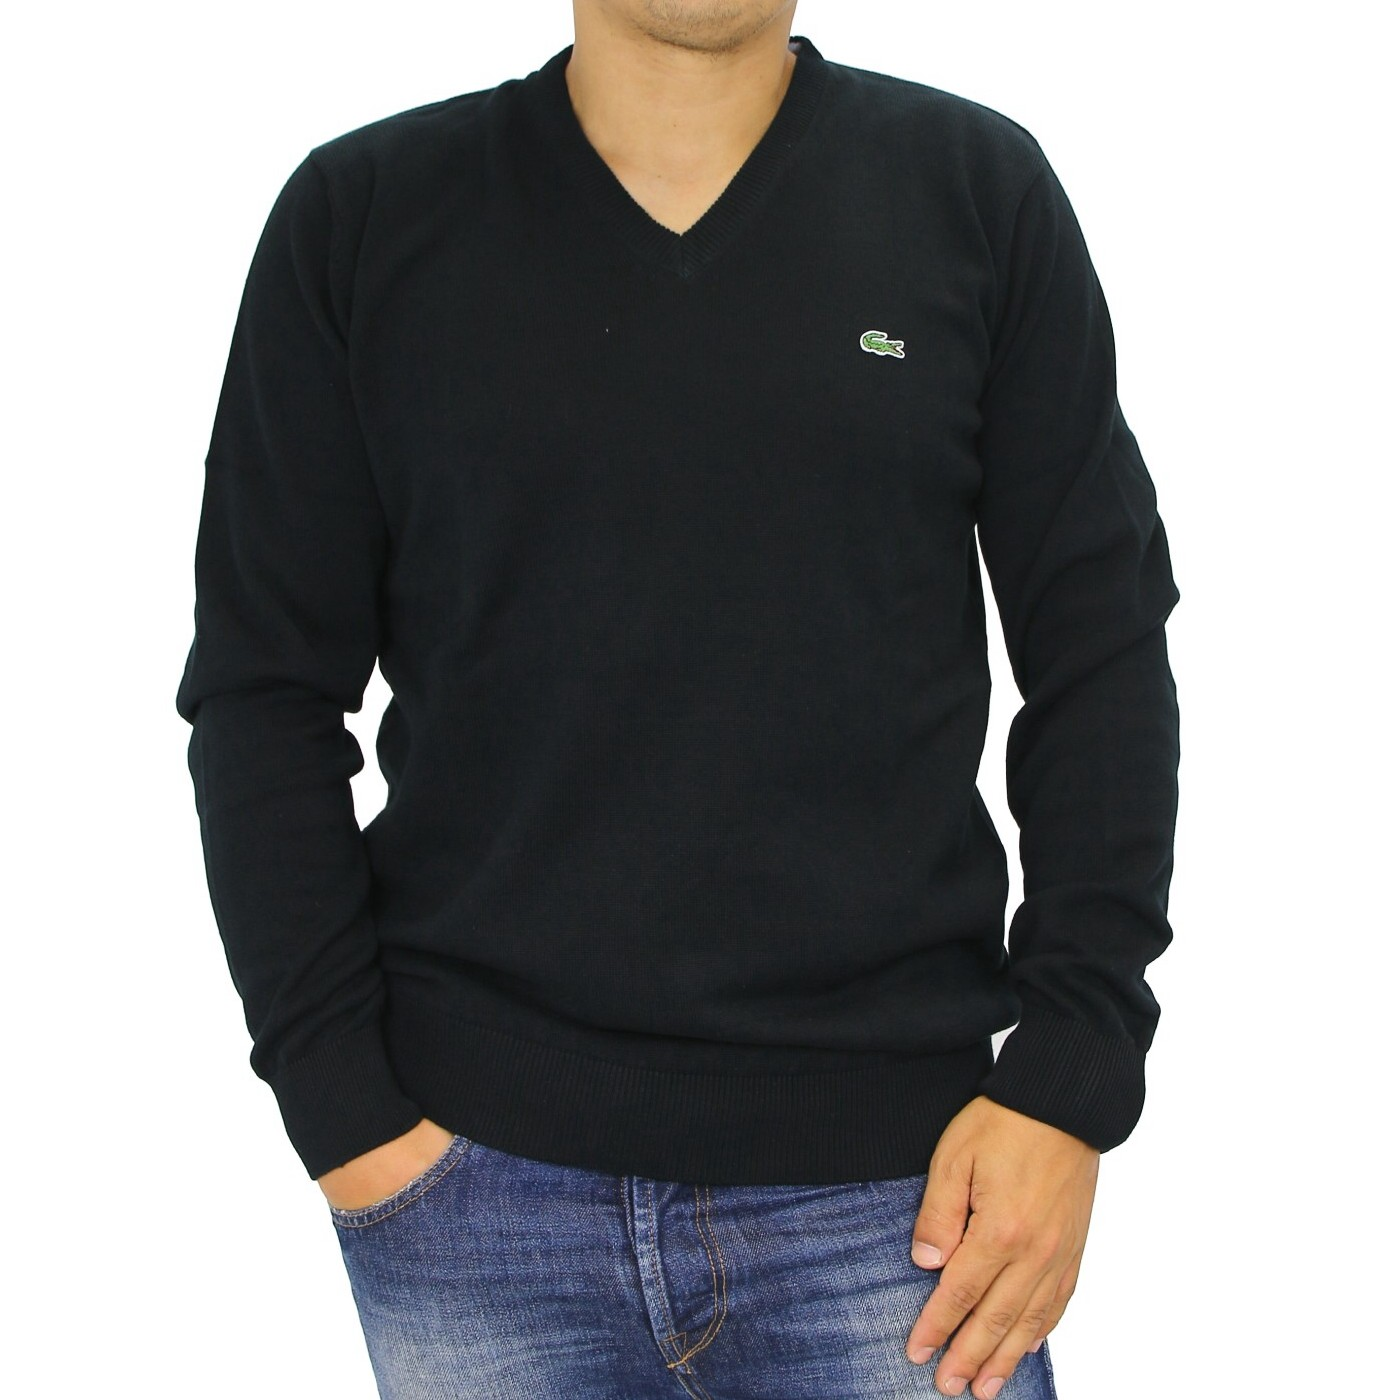 lacoste strickpullover v neck pullover v ausschnitt herren grau schwarz ebay. Black Bedroom Furniture Sets. Home Design Ideas